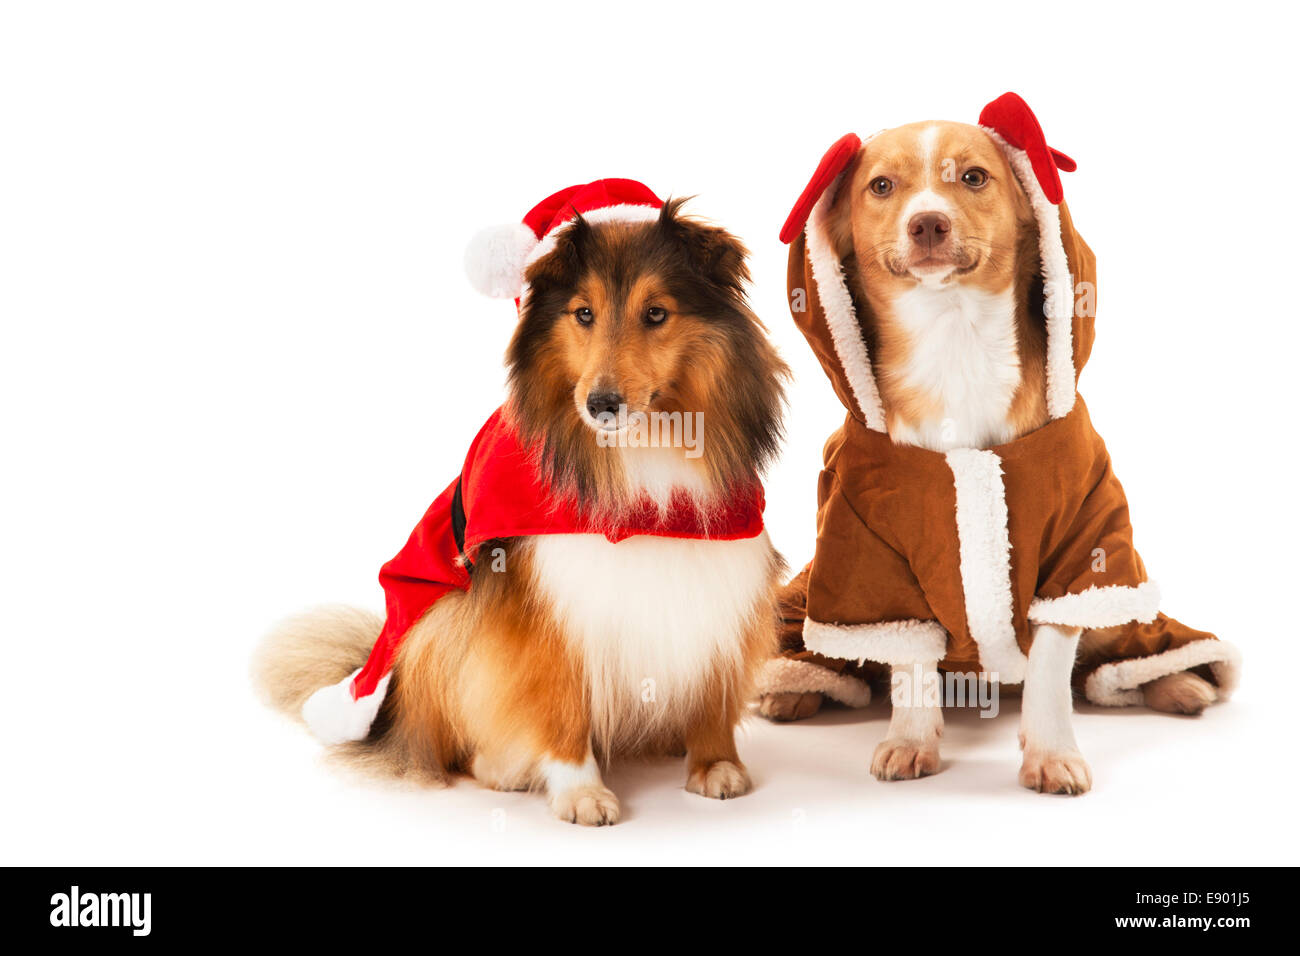 Cute two dogs wearing santa costume over white background - Stock Image